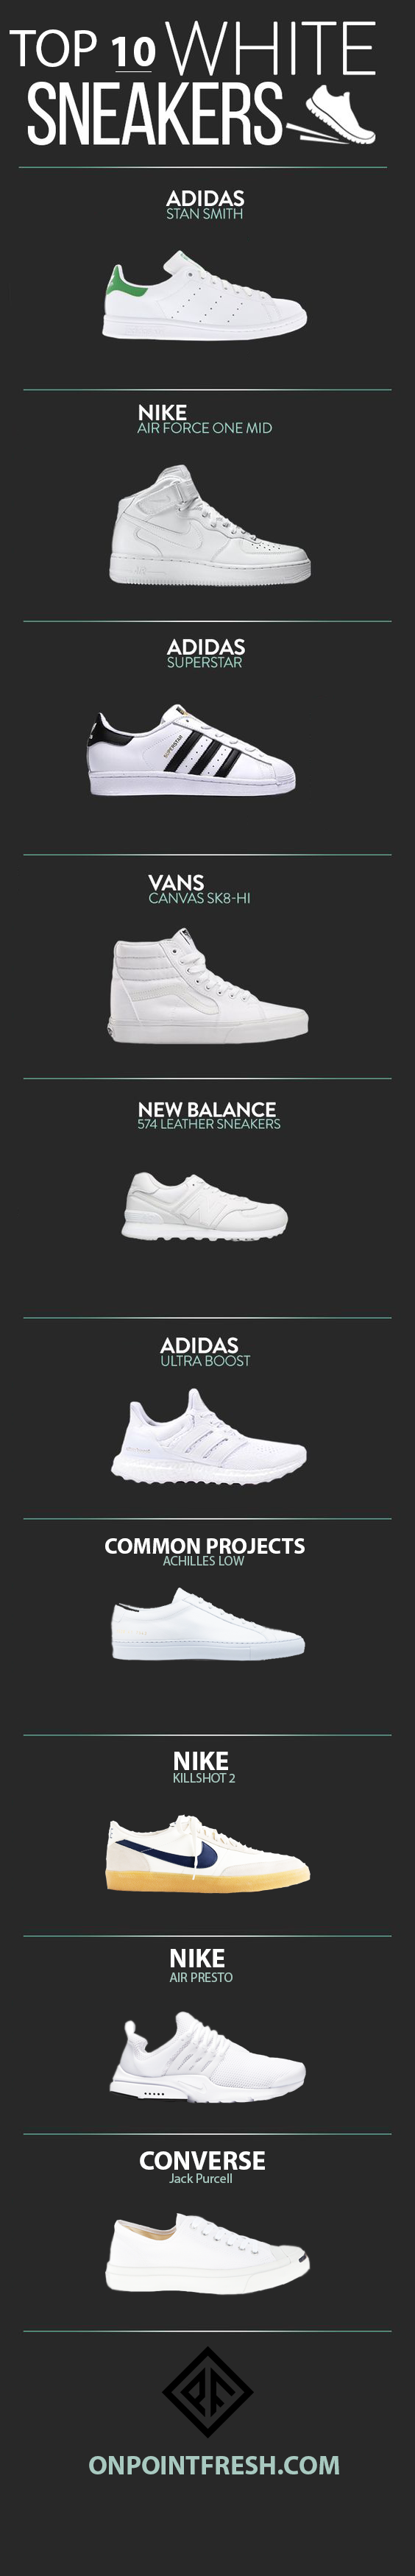 top 10 white sneakers infographic . | Best Mens Fashion